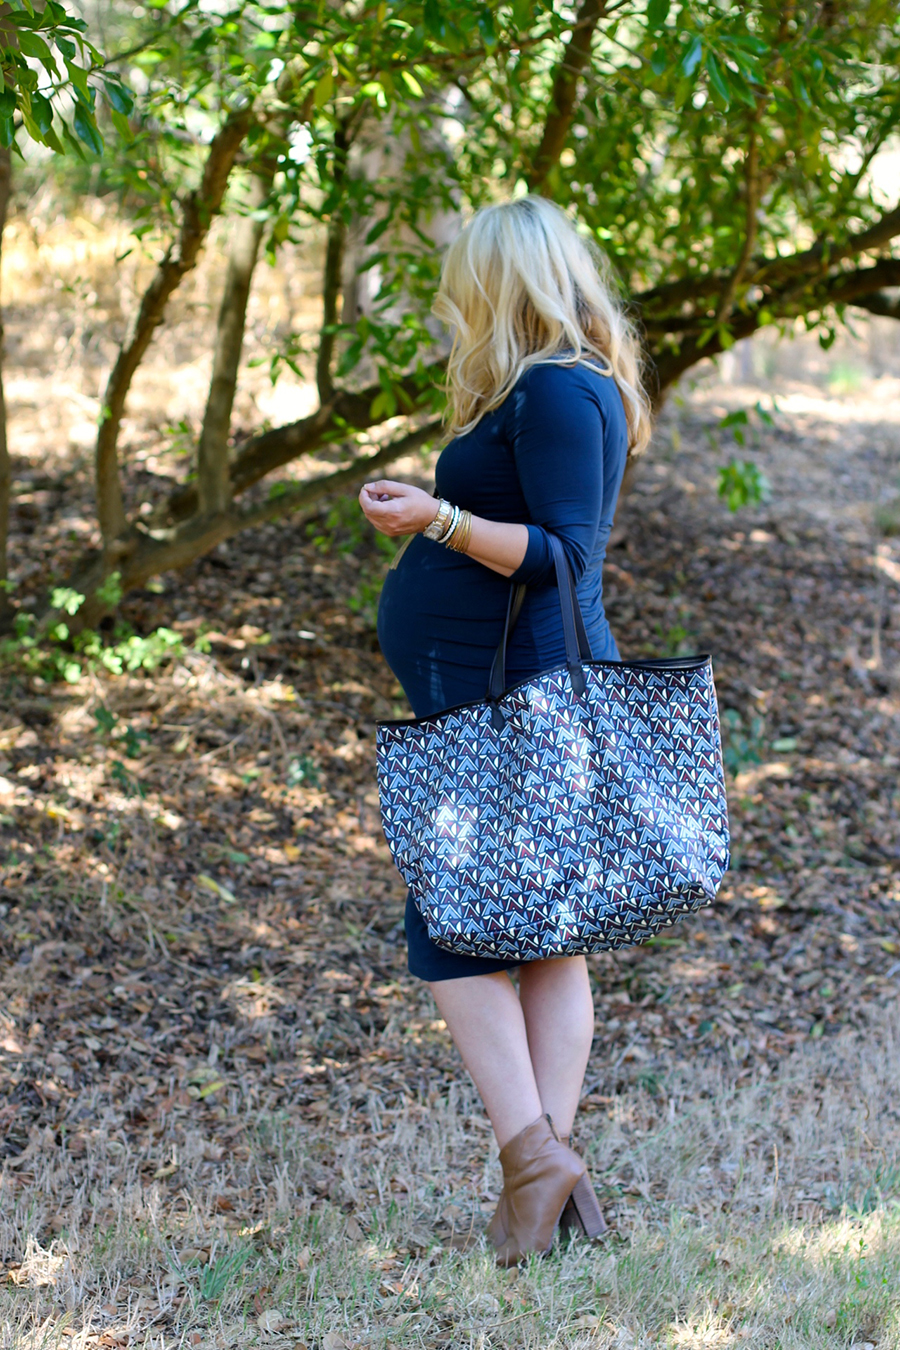 Shirred Dress-Maternity Style-Fashion Blogger-Stella & Dot-Fall Style-Pregnancy Style 5